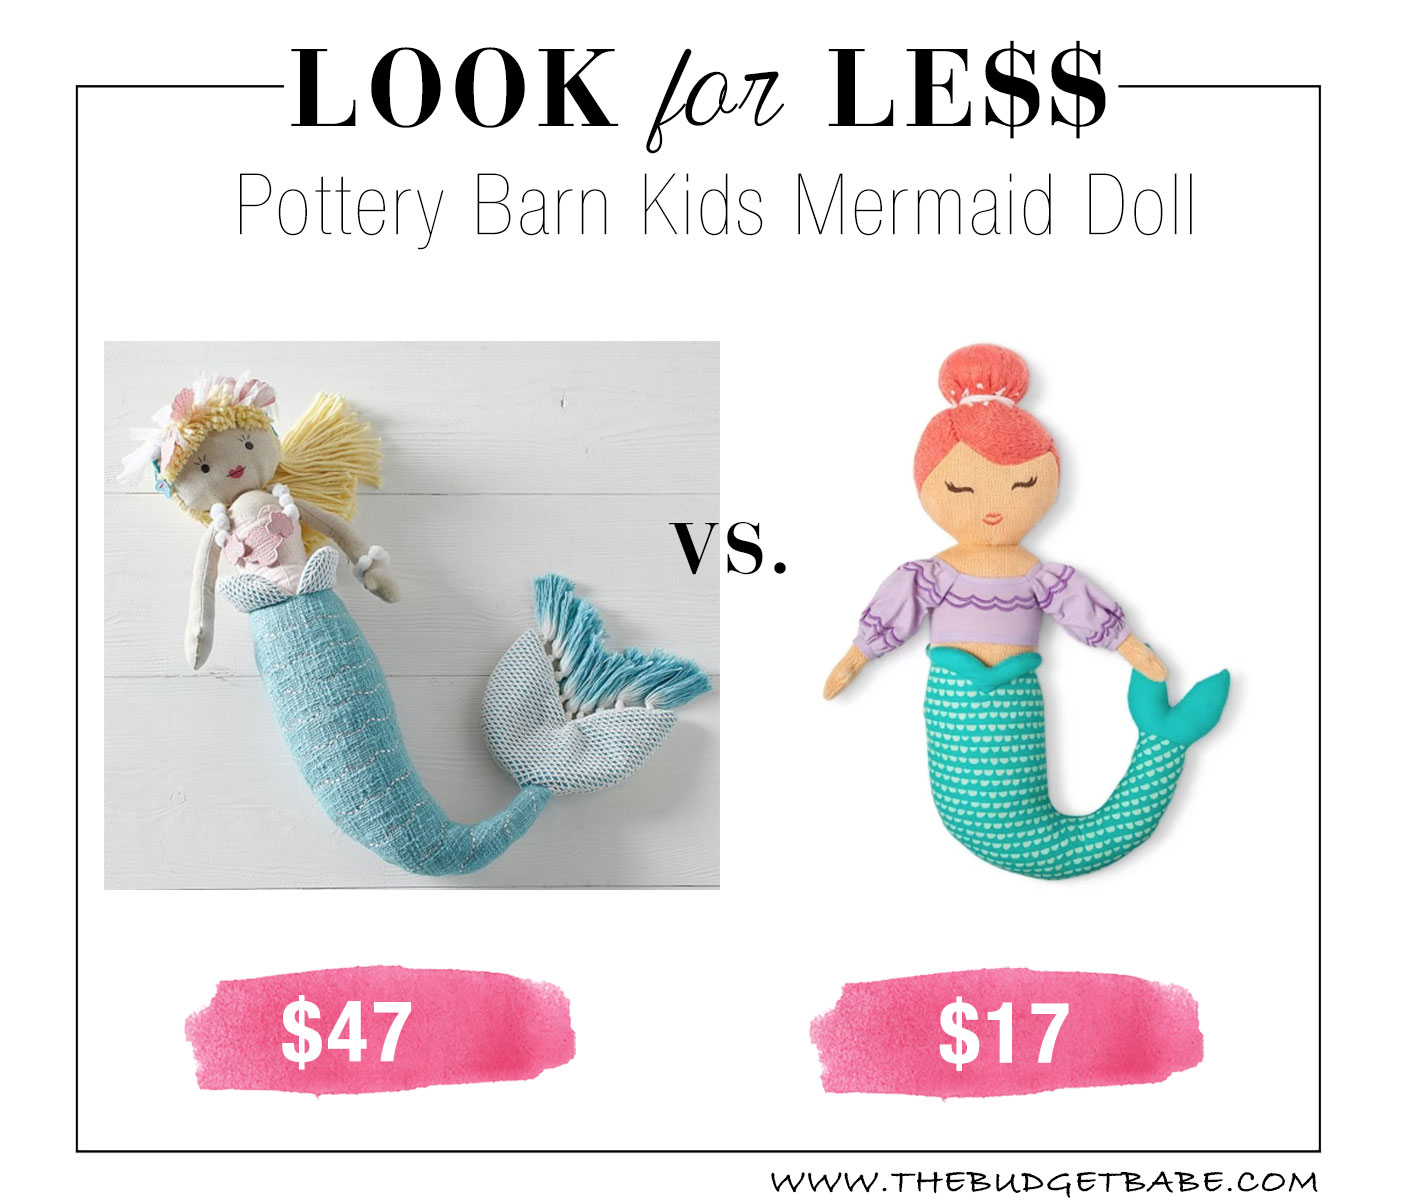 Target has that Pottery Barn Kids look for less!